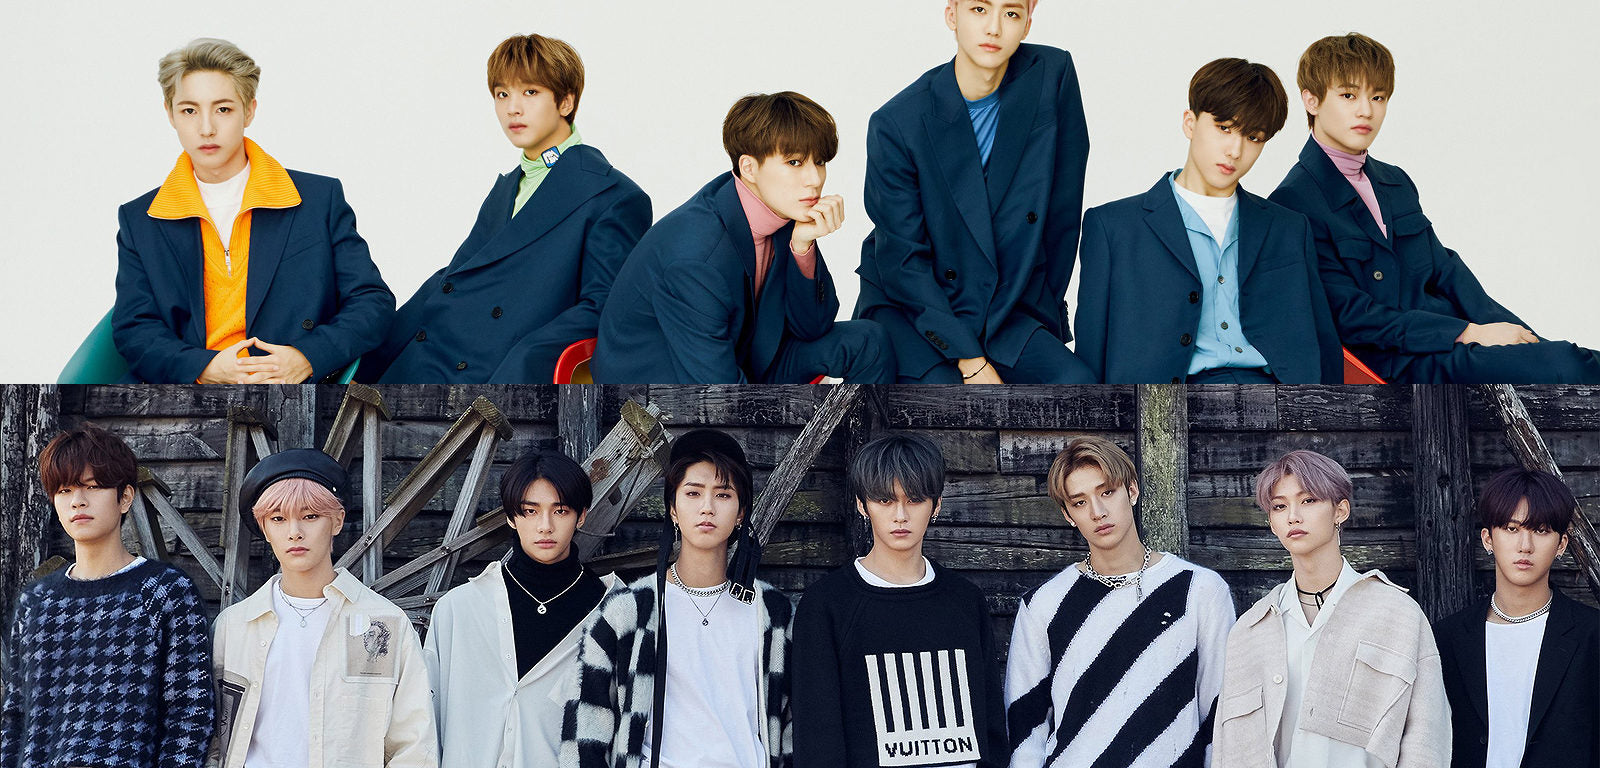 Members of NCT DREAM and Stray Kids to collaborate during SBS Gayo Daejun 2019 - Kpopshop